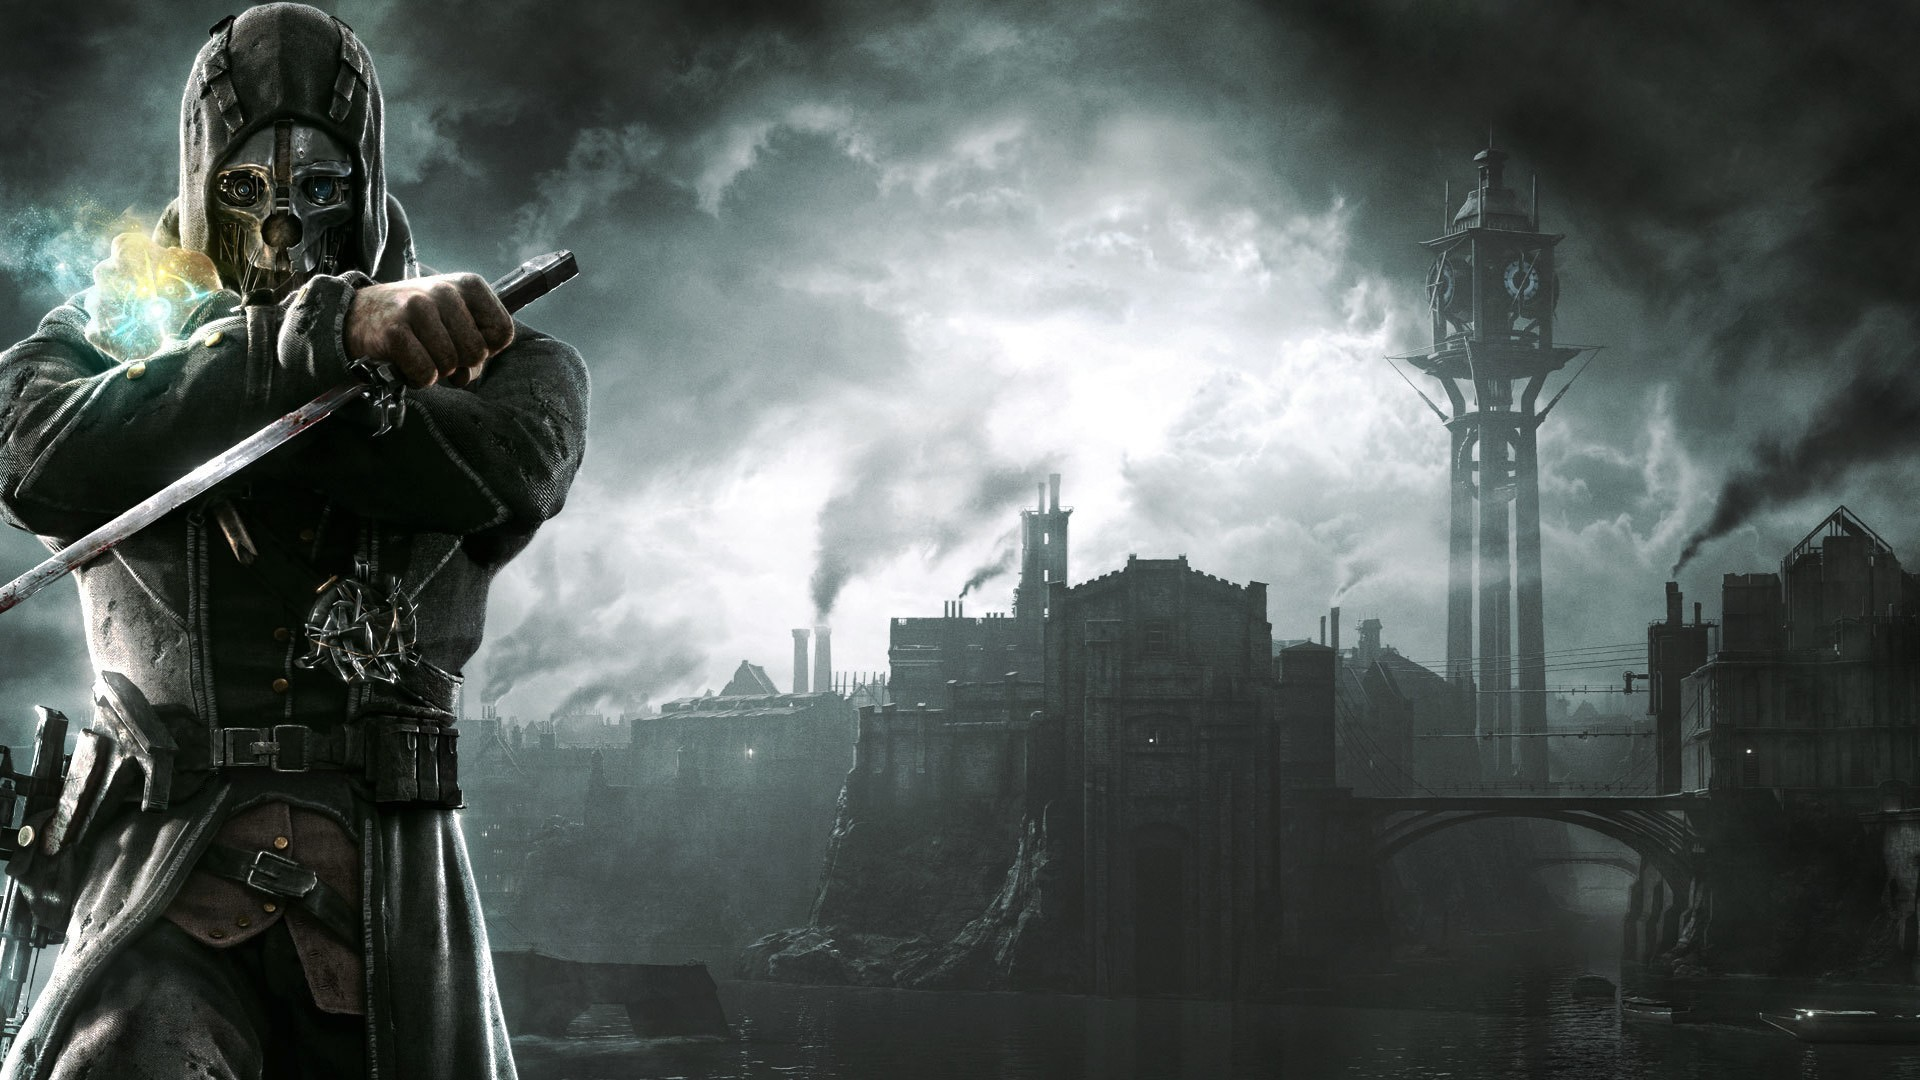 Dishonored Fan Art Corvo Video Games Wallpapers Hd: Names From Dishonored